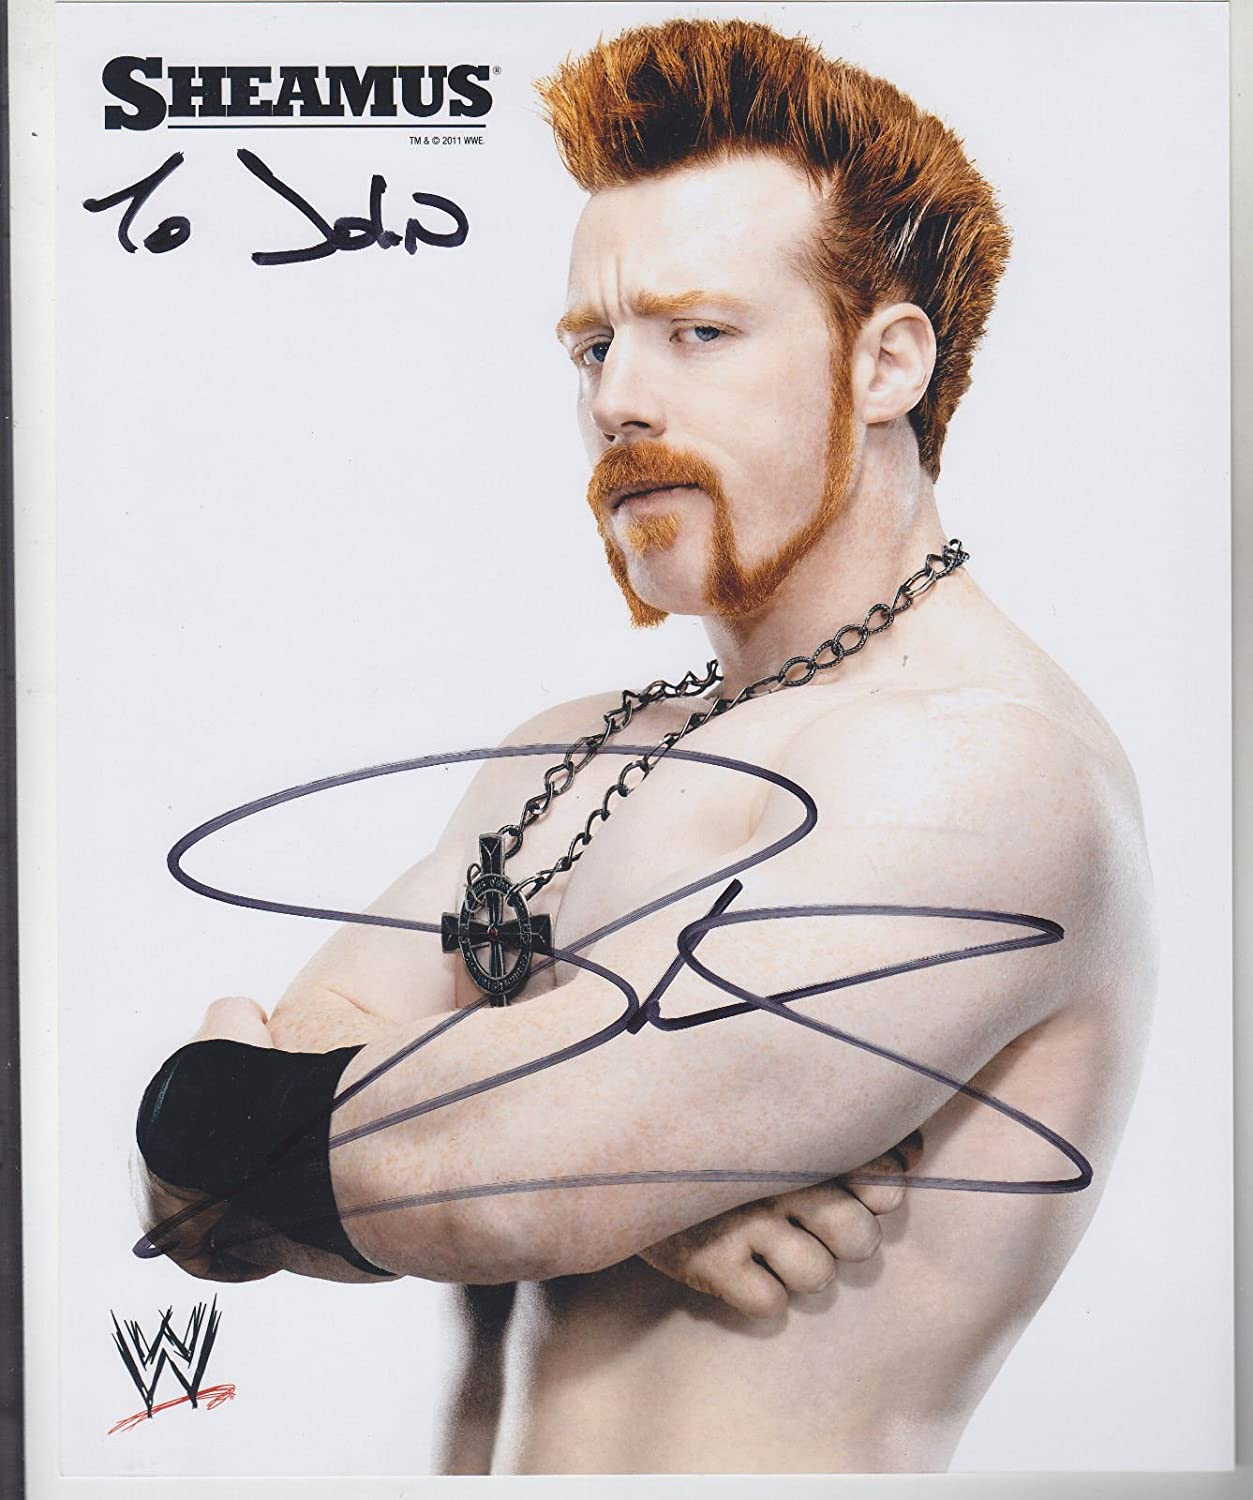 Sheamus Signed 8 X 10 Color Glossy Photo Wrestling Wwe Wwf